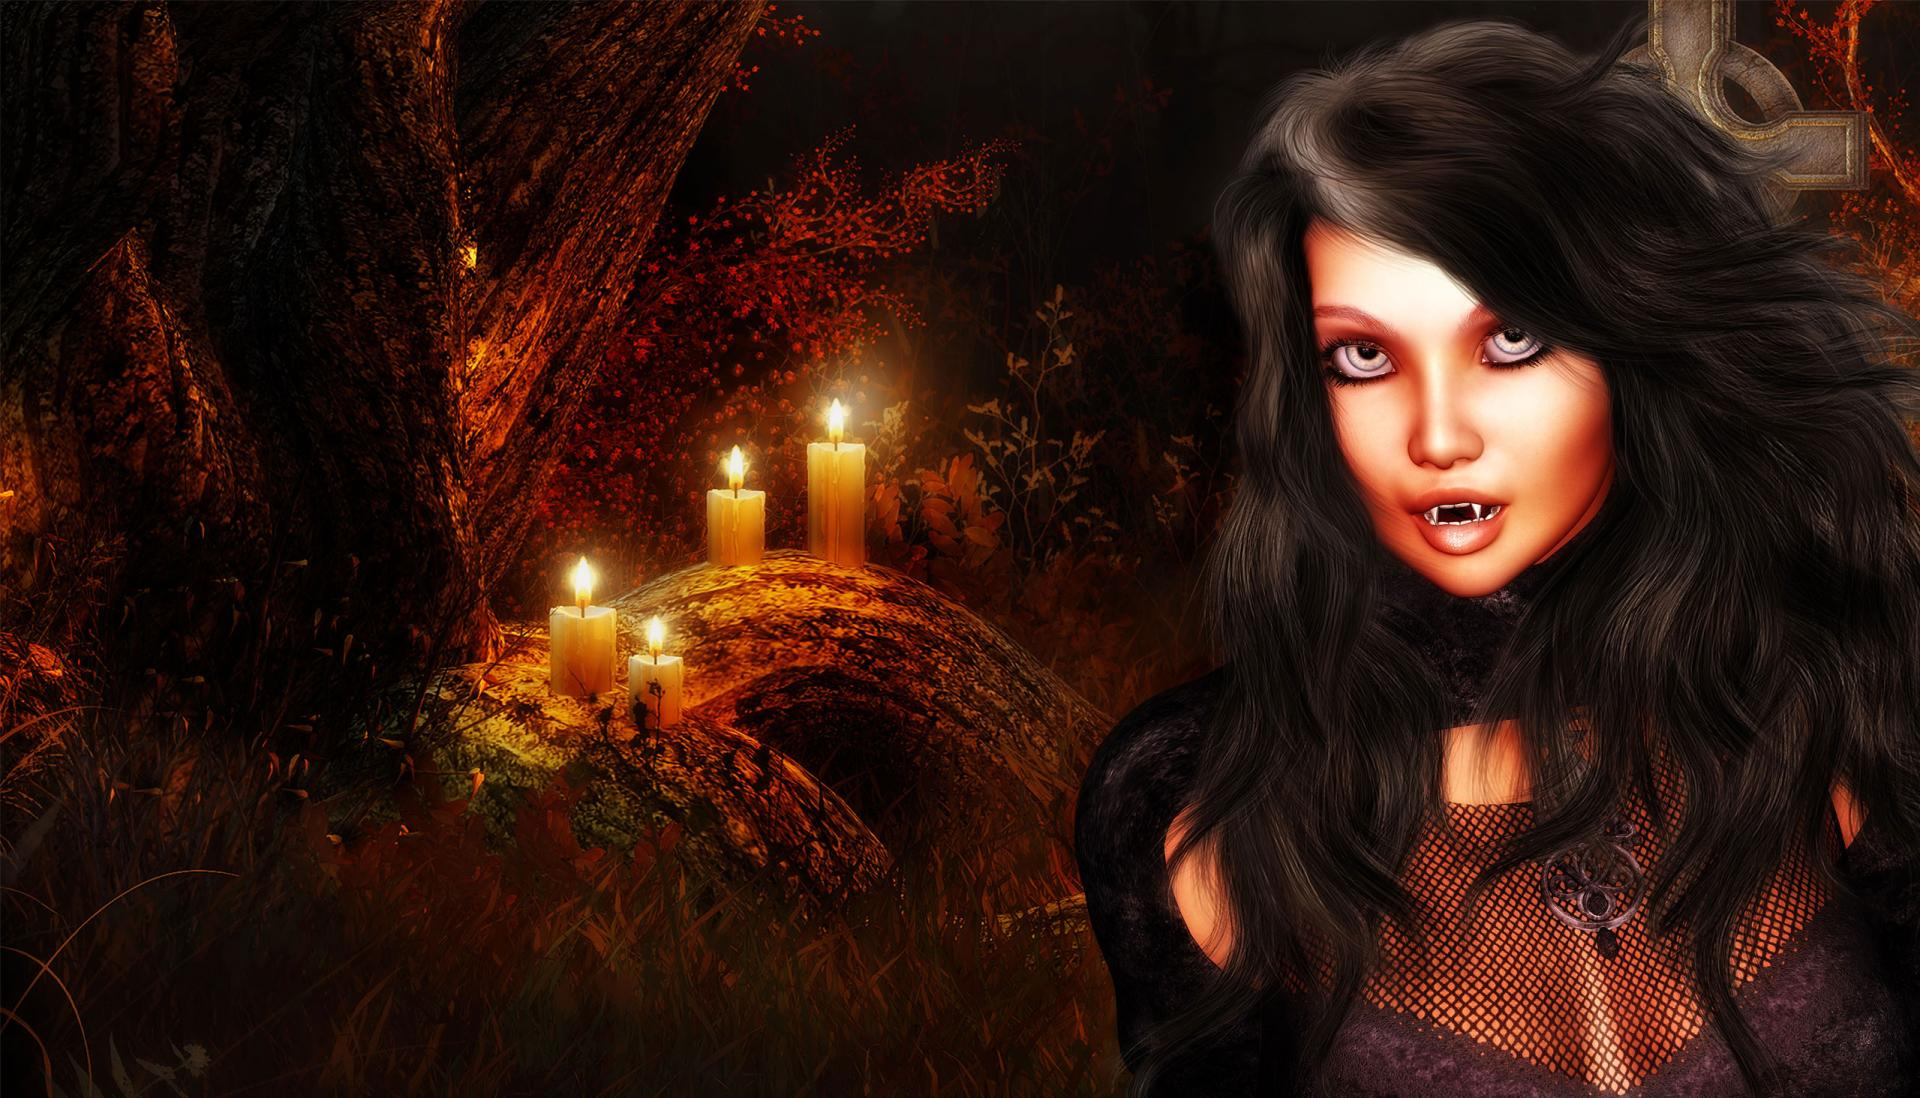 Vampire wallpapers HD quality